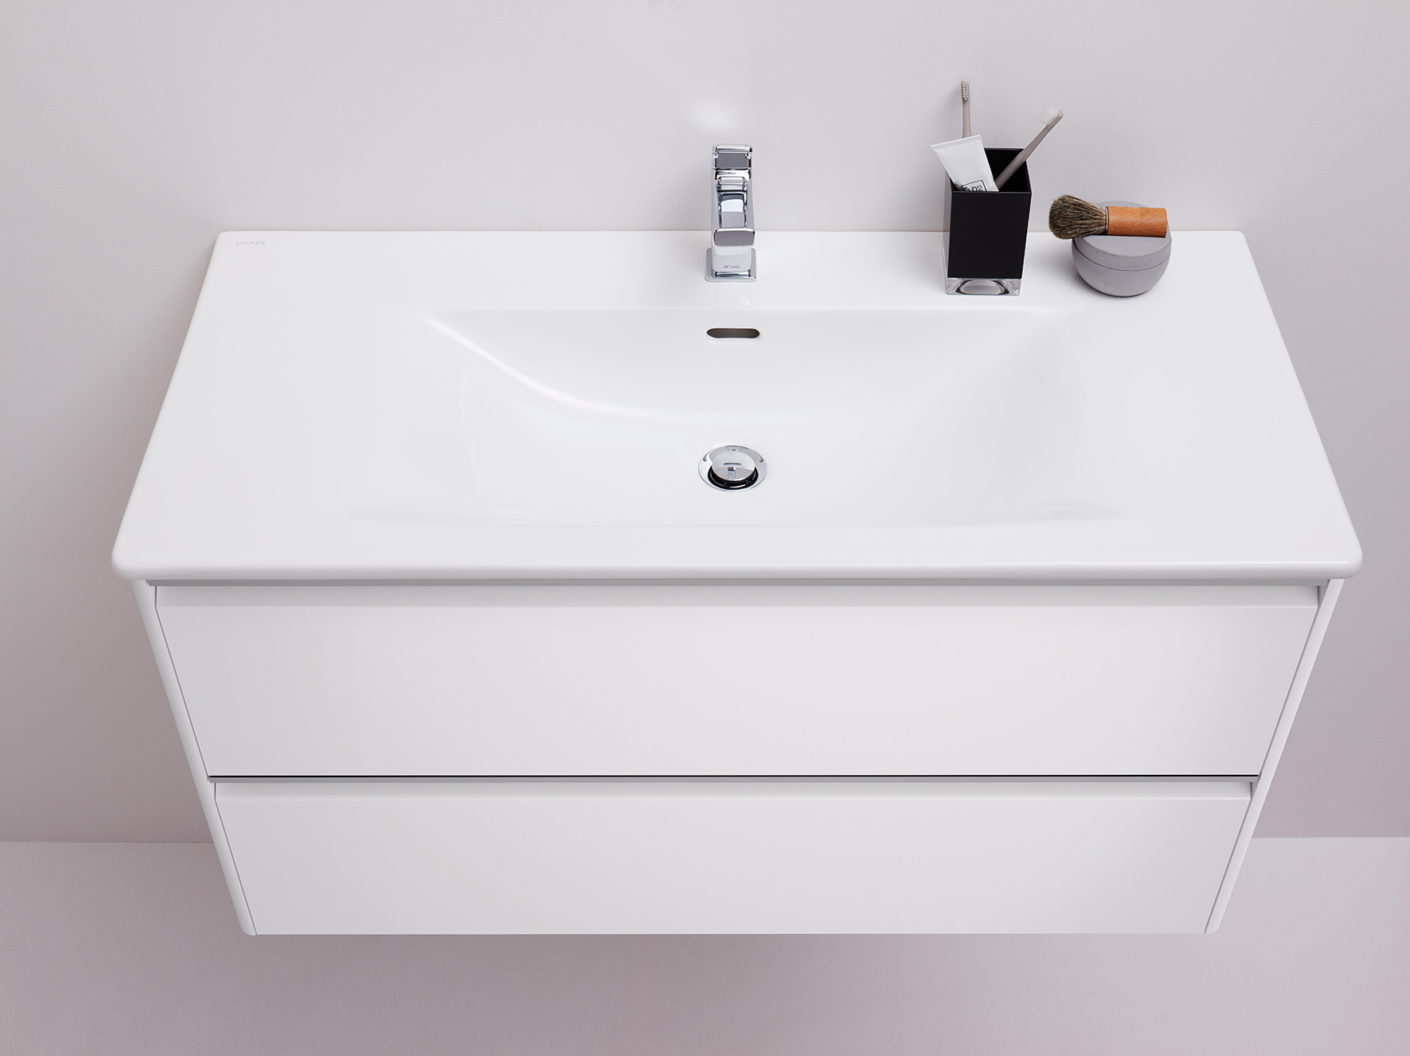 """The new washbasin from the """"Palace"""" series by Andreas Dimitriadis and the vanity unit from the """"Base"""" bathroom furniture collection"""